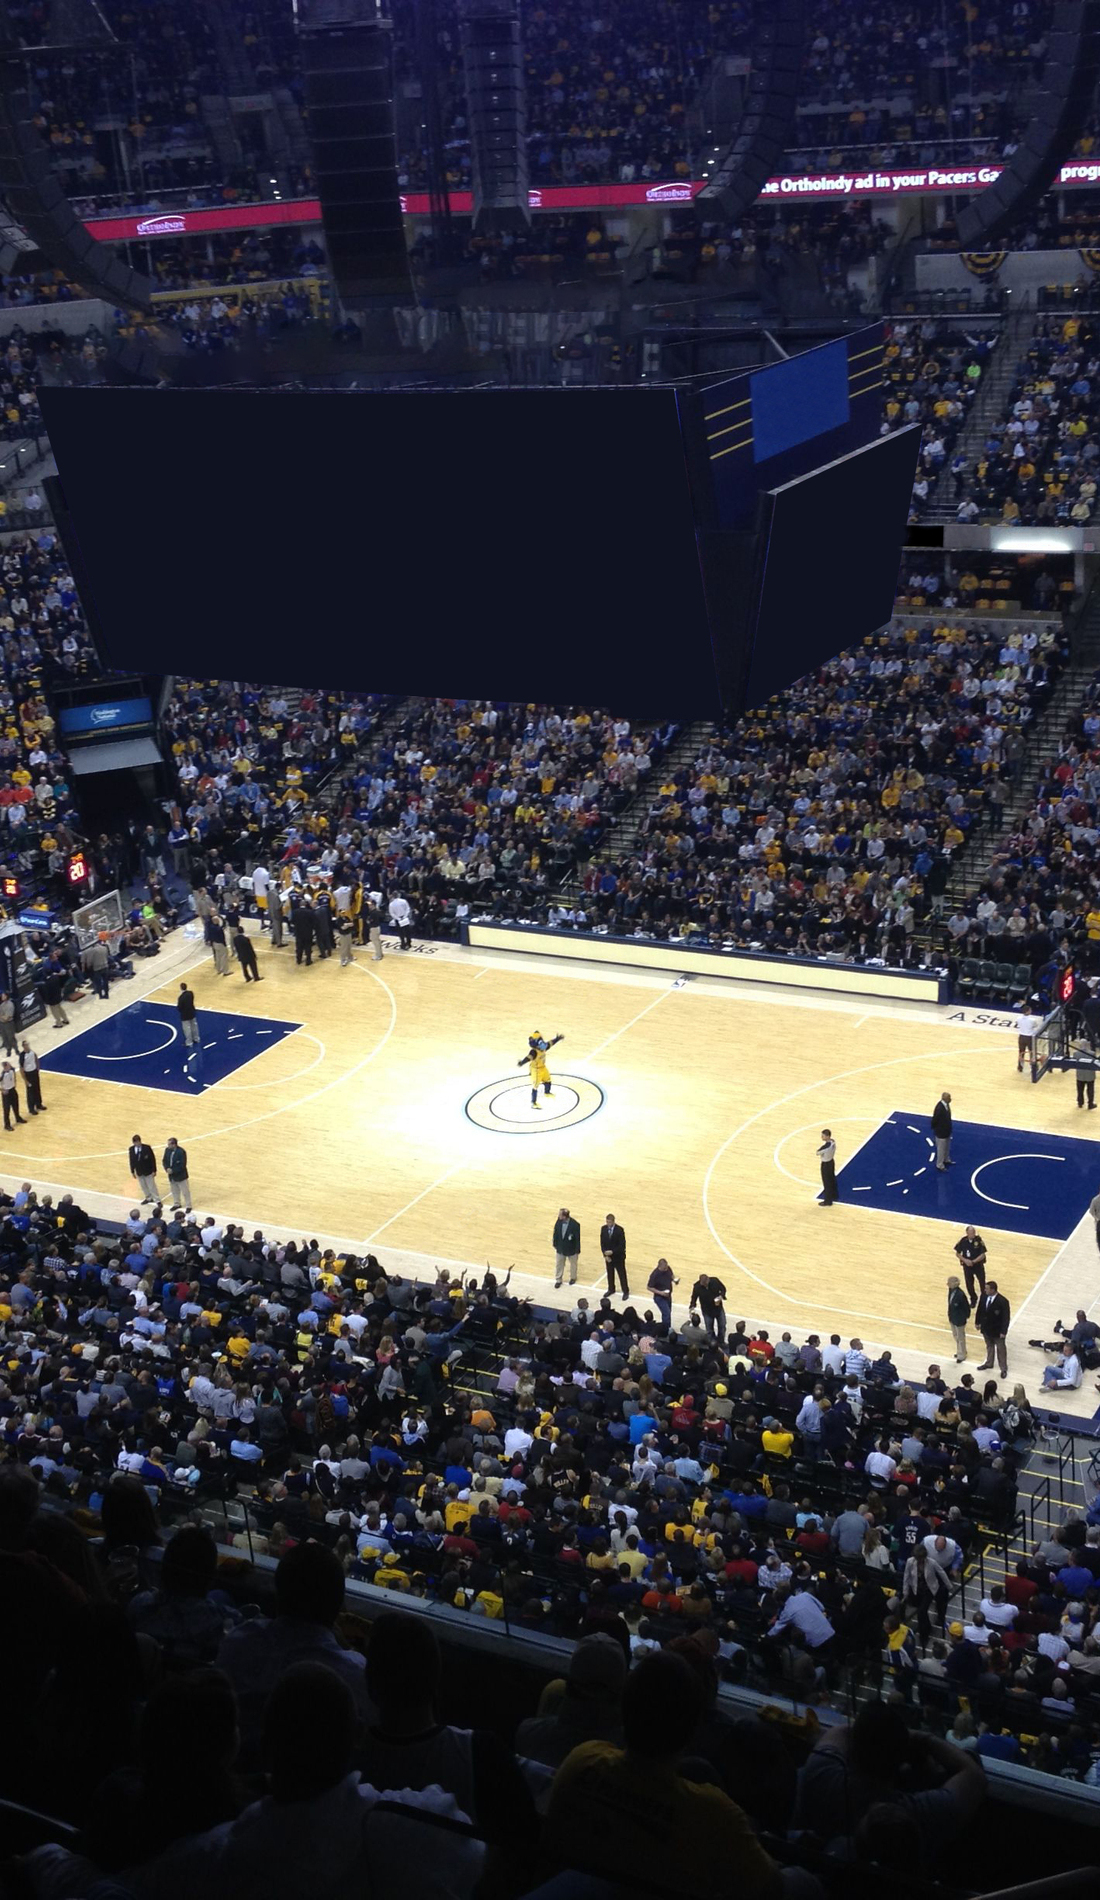 A Indiana Pacers live event